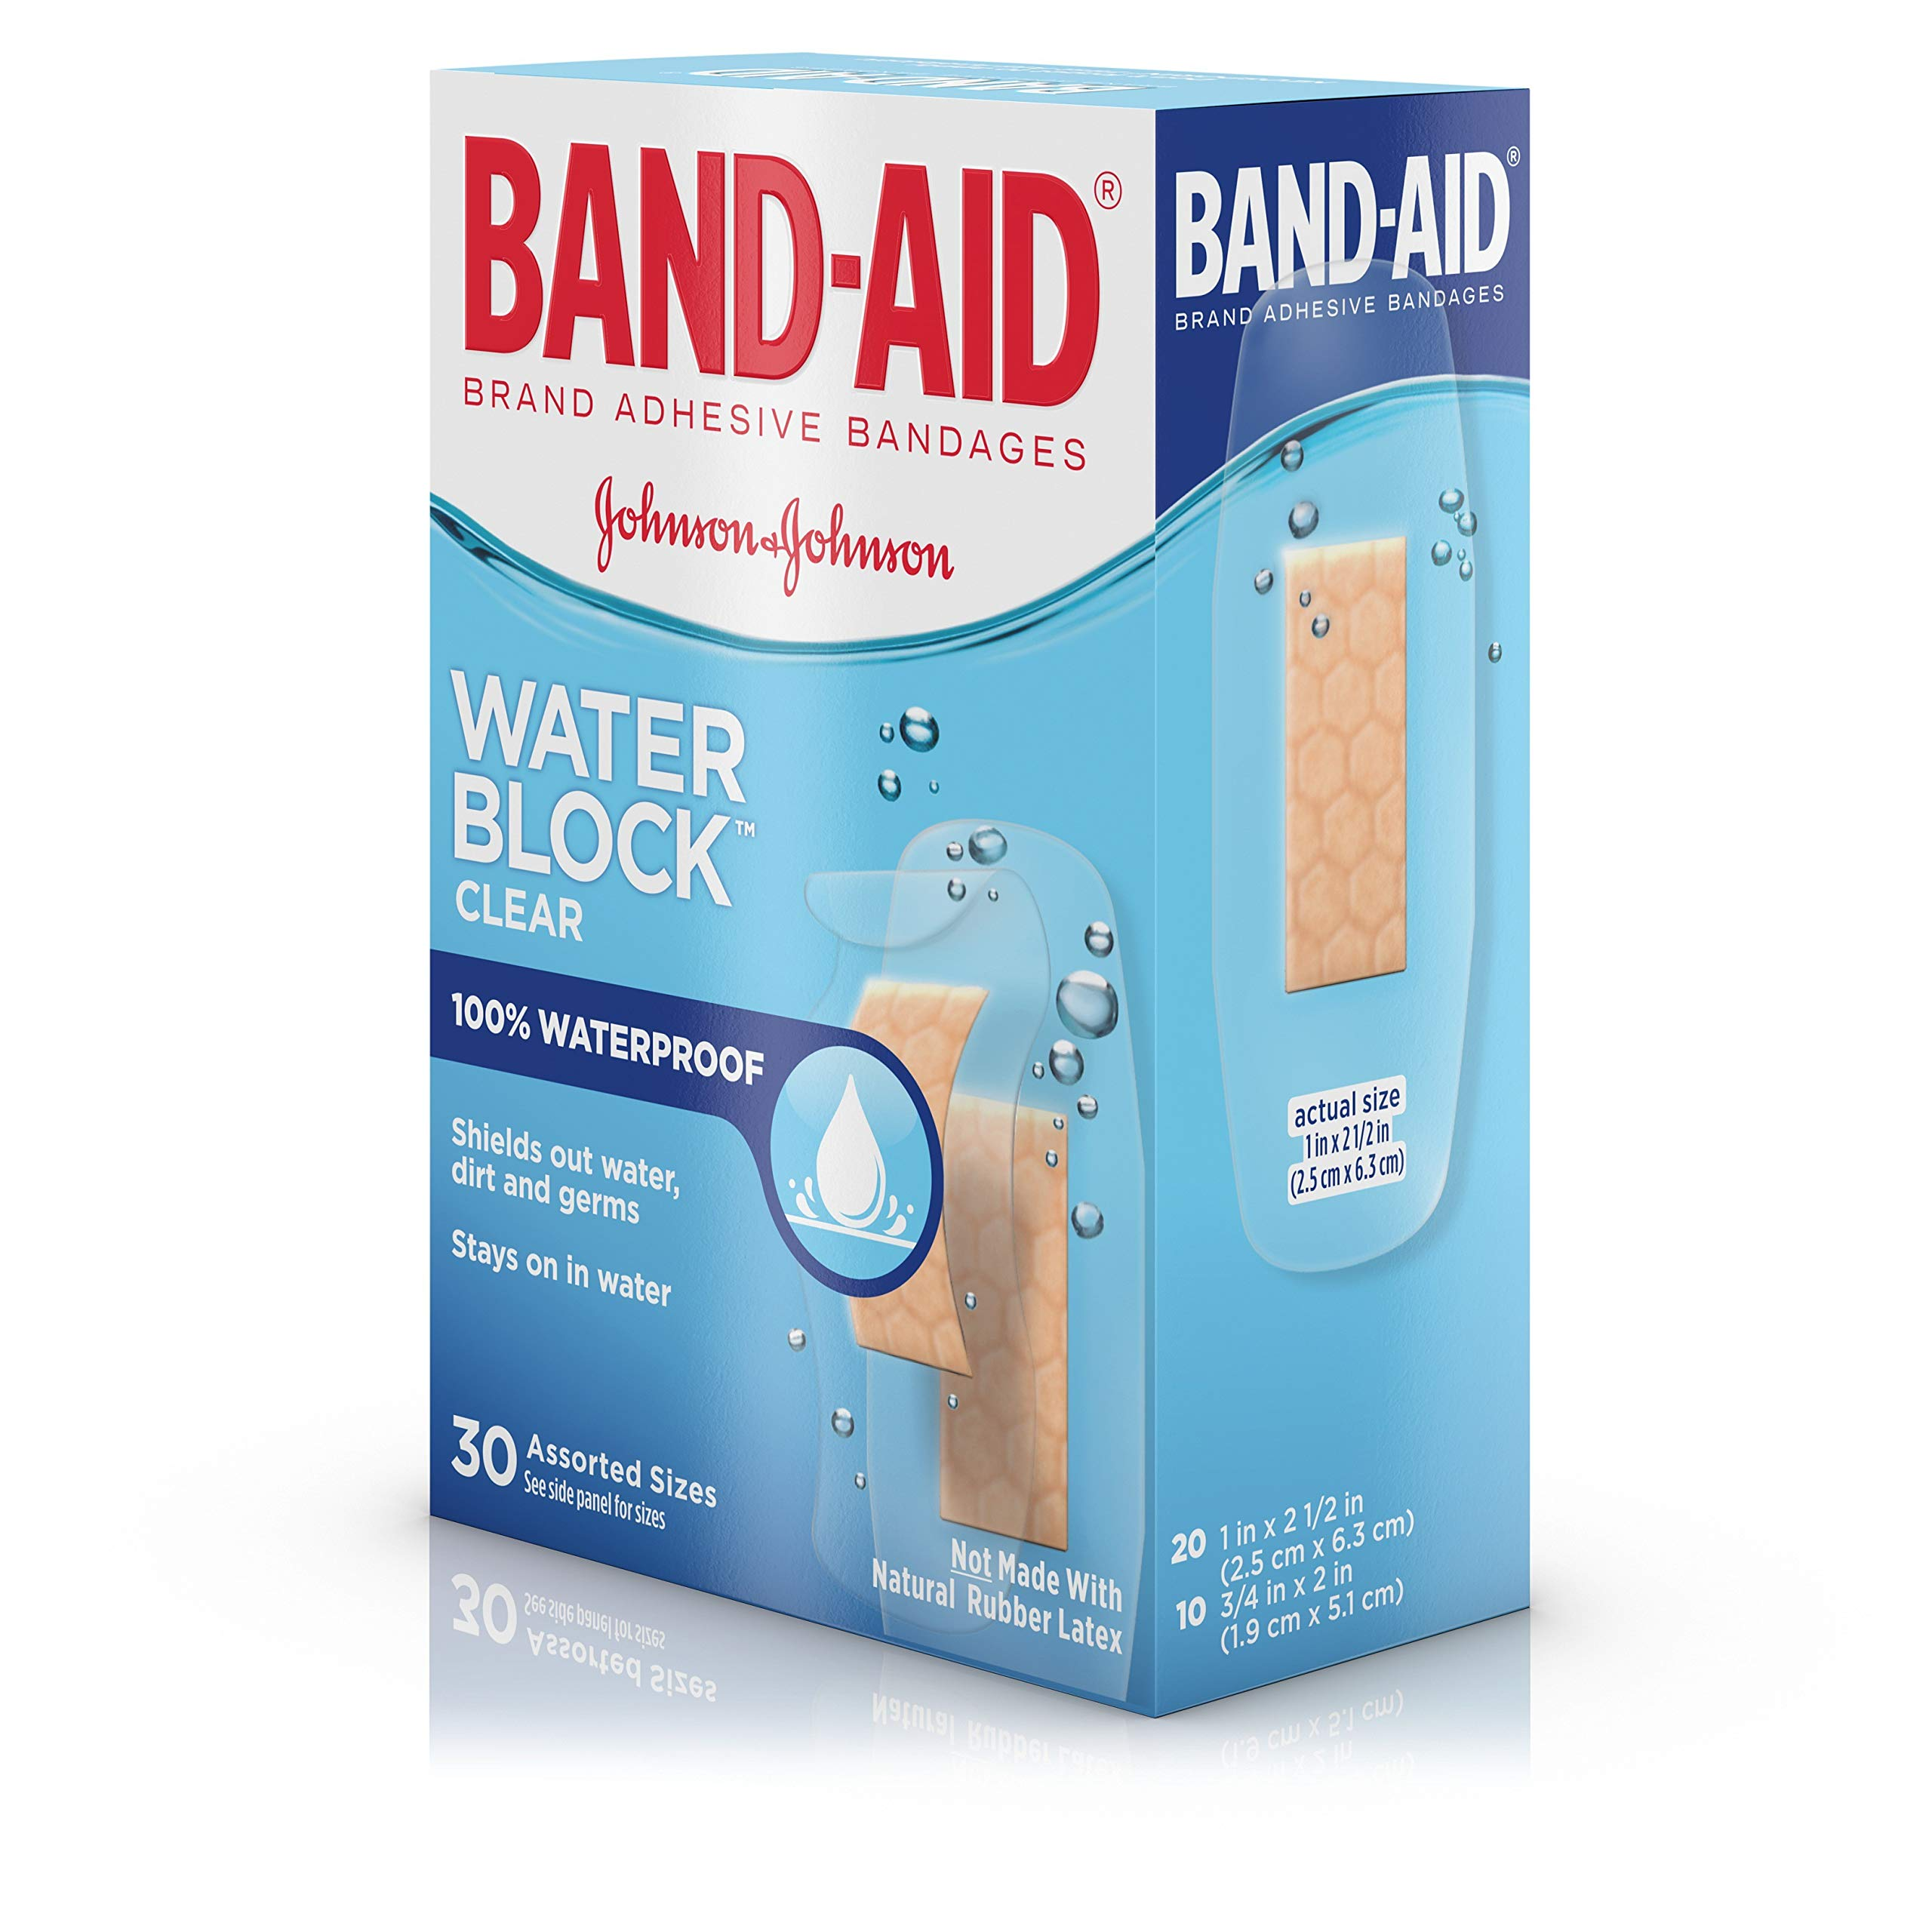 Band-Aid Brand Water Block Plus Waterproof Clear Adhesive Bandages for Minor Cuts and Scrapes, 30 ct (6 Pack) by Band-Aid (Image #14)